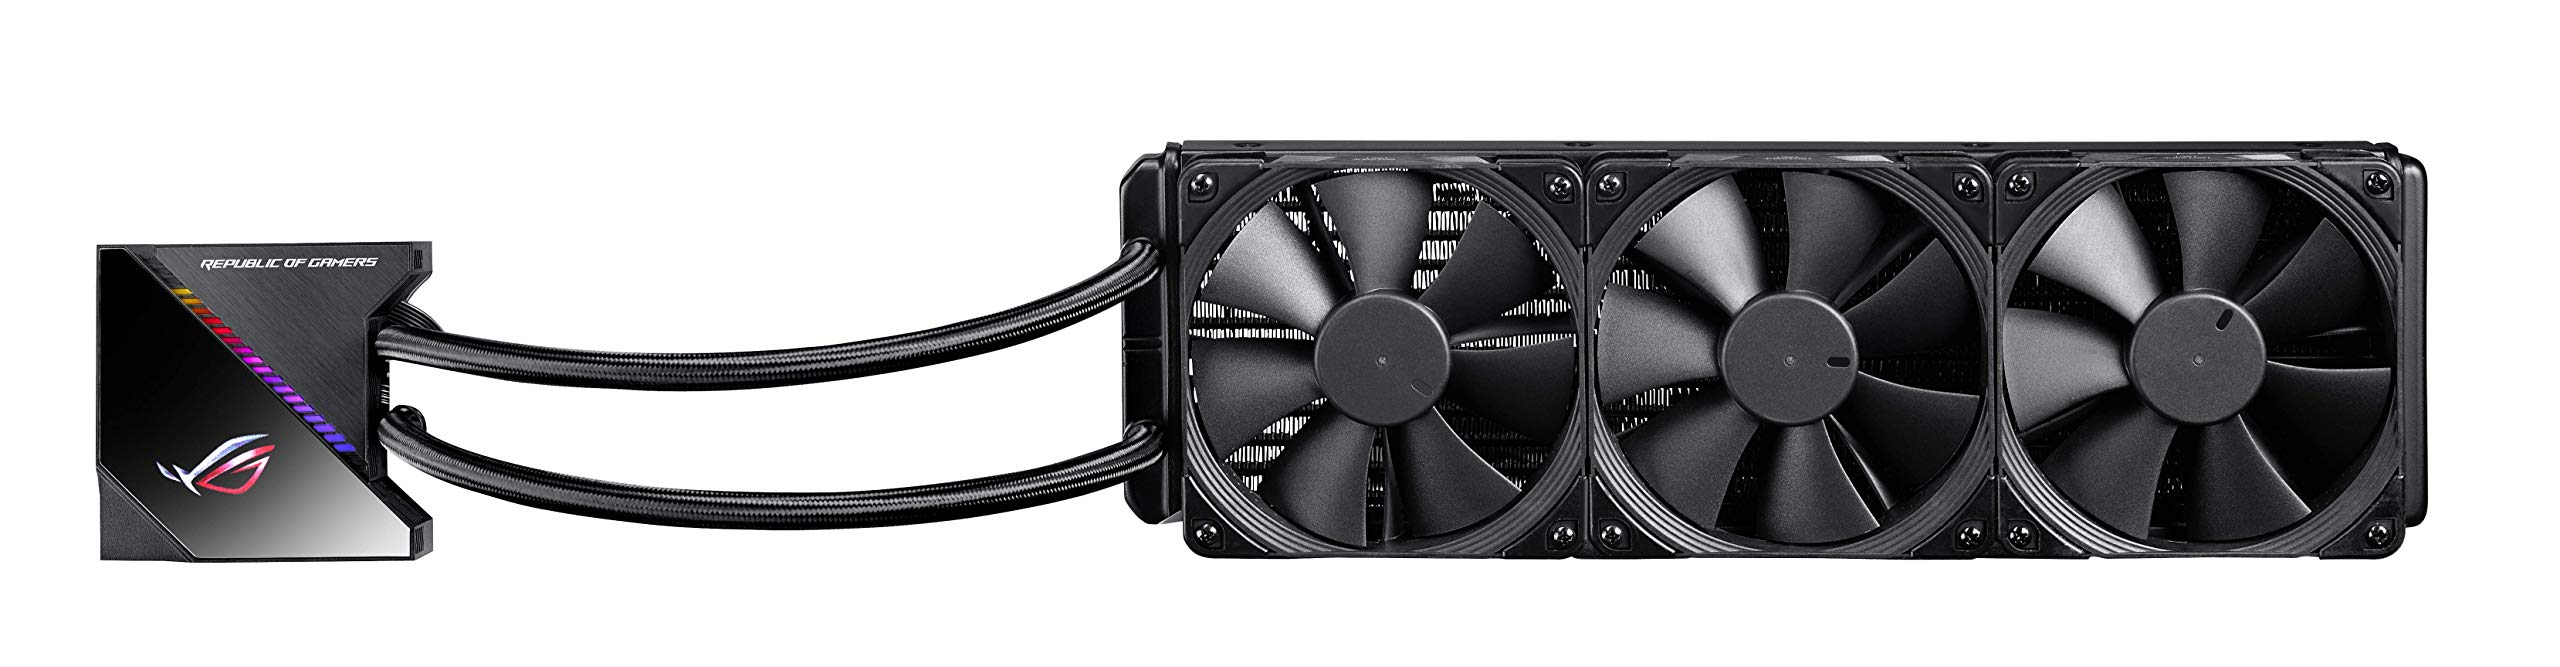 ASUS 90RC0020-M0UAY0 ROG Ryujin 360 All-in-One Liquid CPU Cooler - Black by ASUS (Image #2)